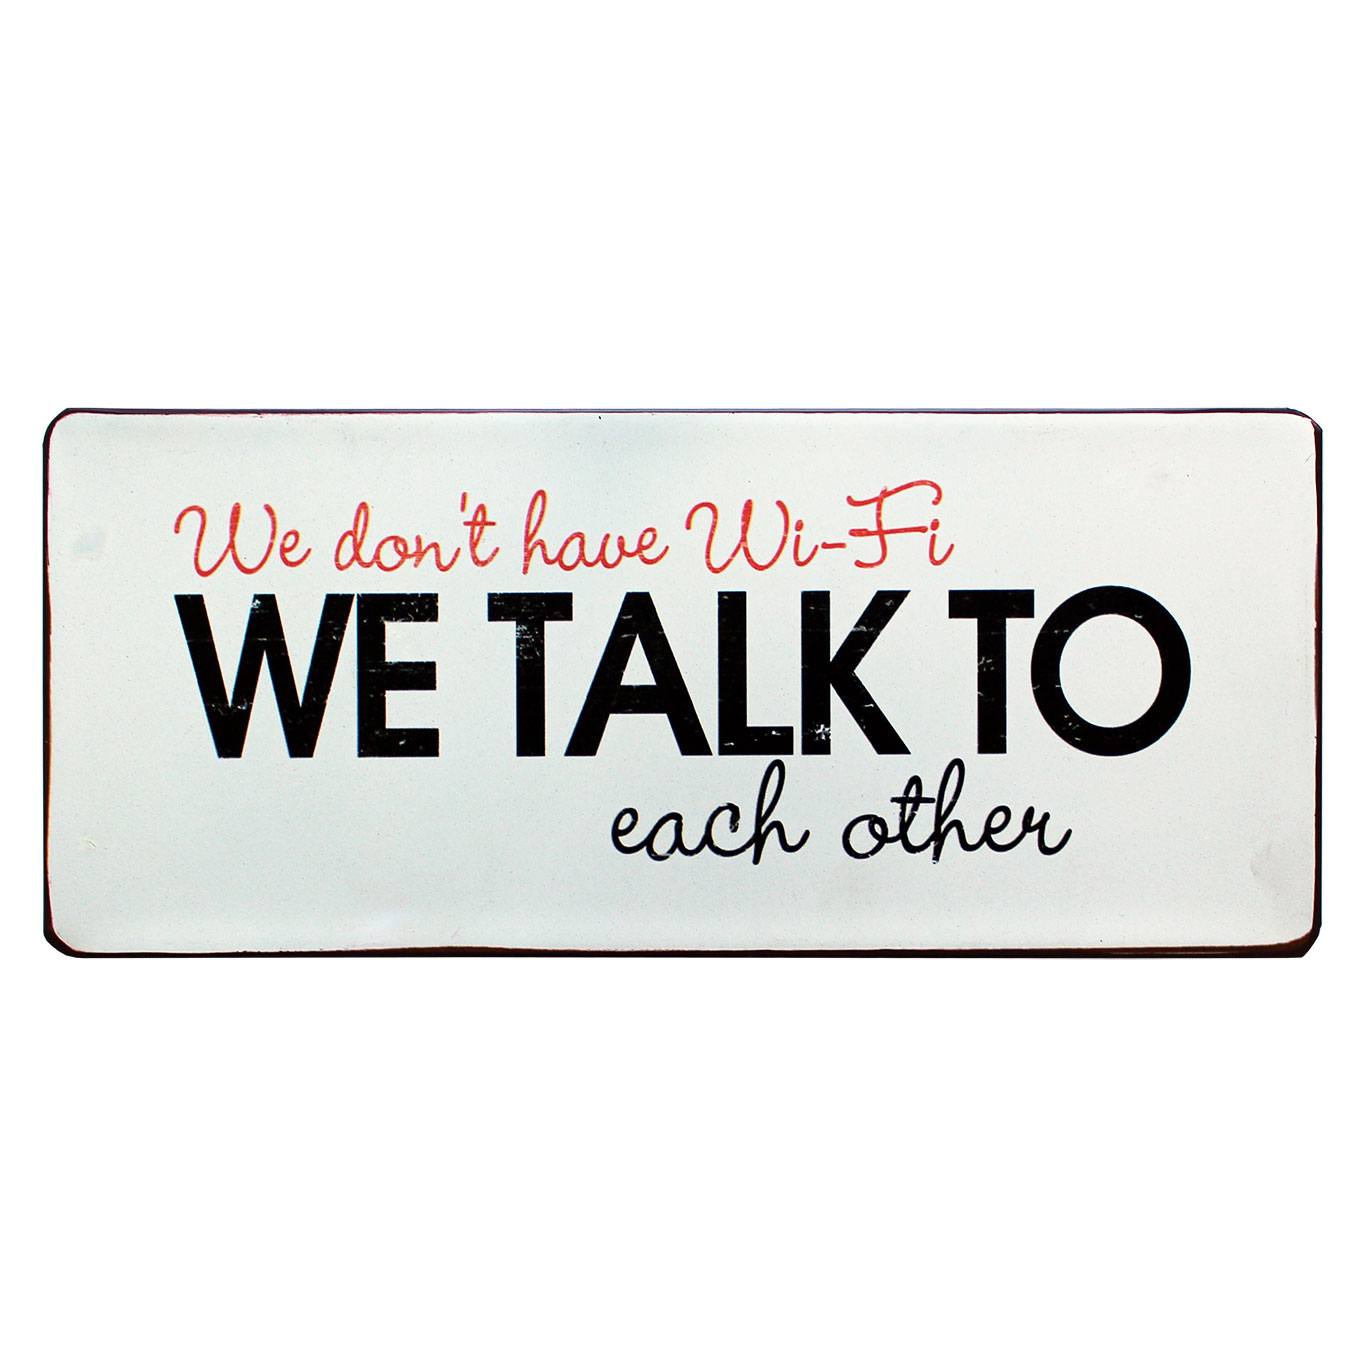 em4985 we do not have wifi we talk to each other rustiek tekst bord cadeau kado online metaal deco decoratie